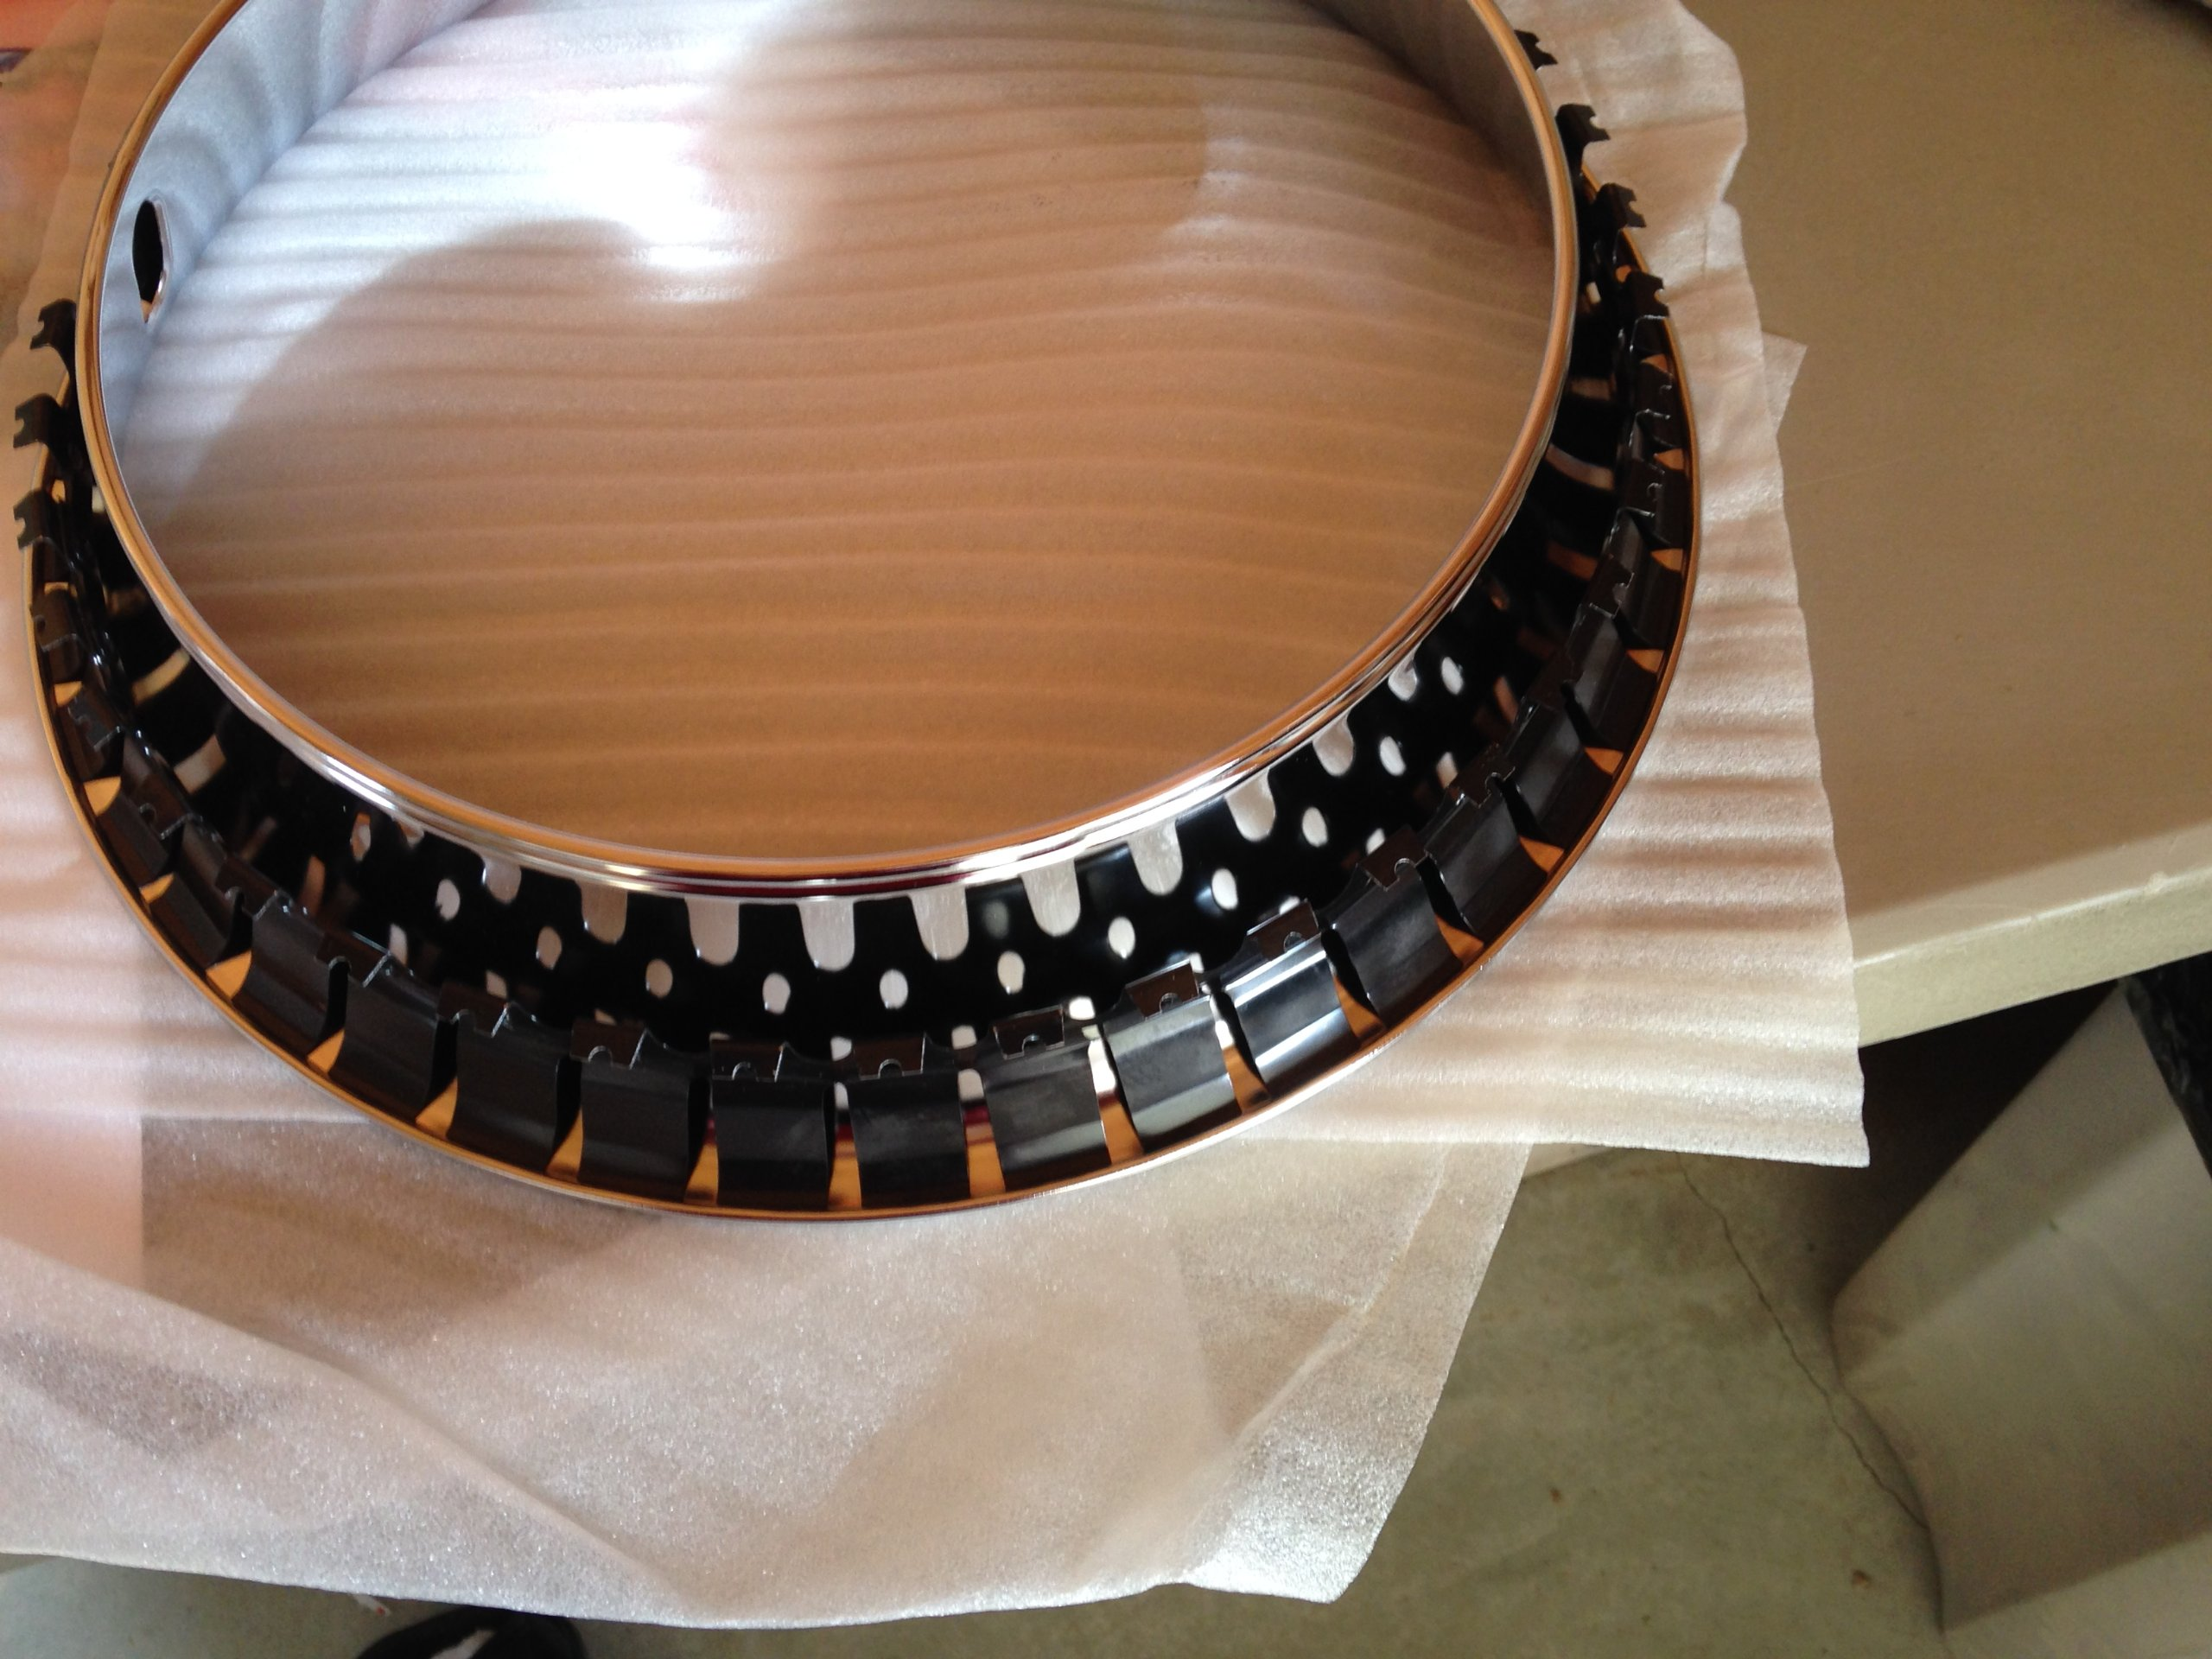 14x7 California Chrome Plated Stainless Steel Beauty Trim Rings Pontiac Ralley by JAE (Image #1)